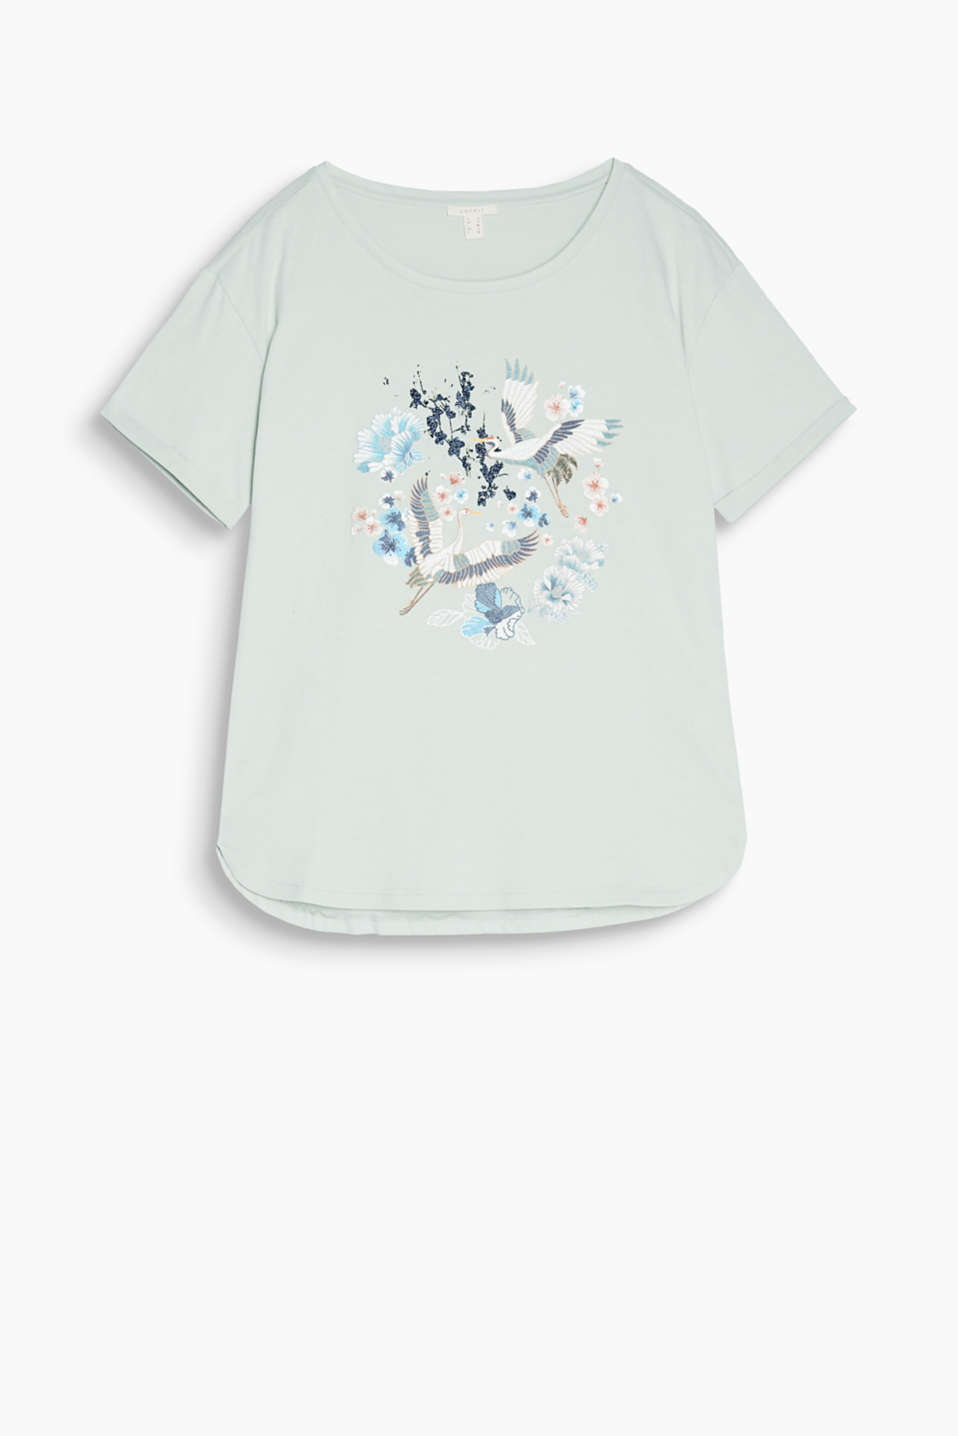 An Asian twist: this casual cotton top boasts an Asian front print and glitter effects